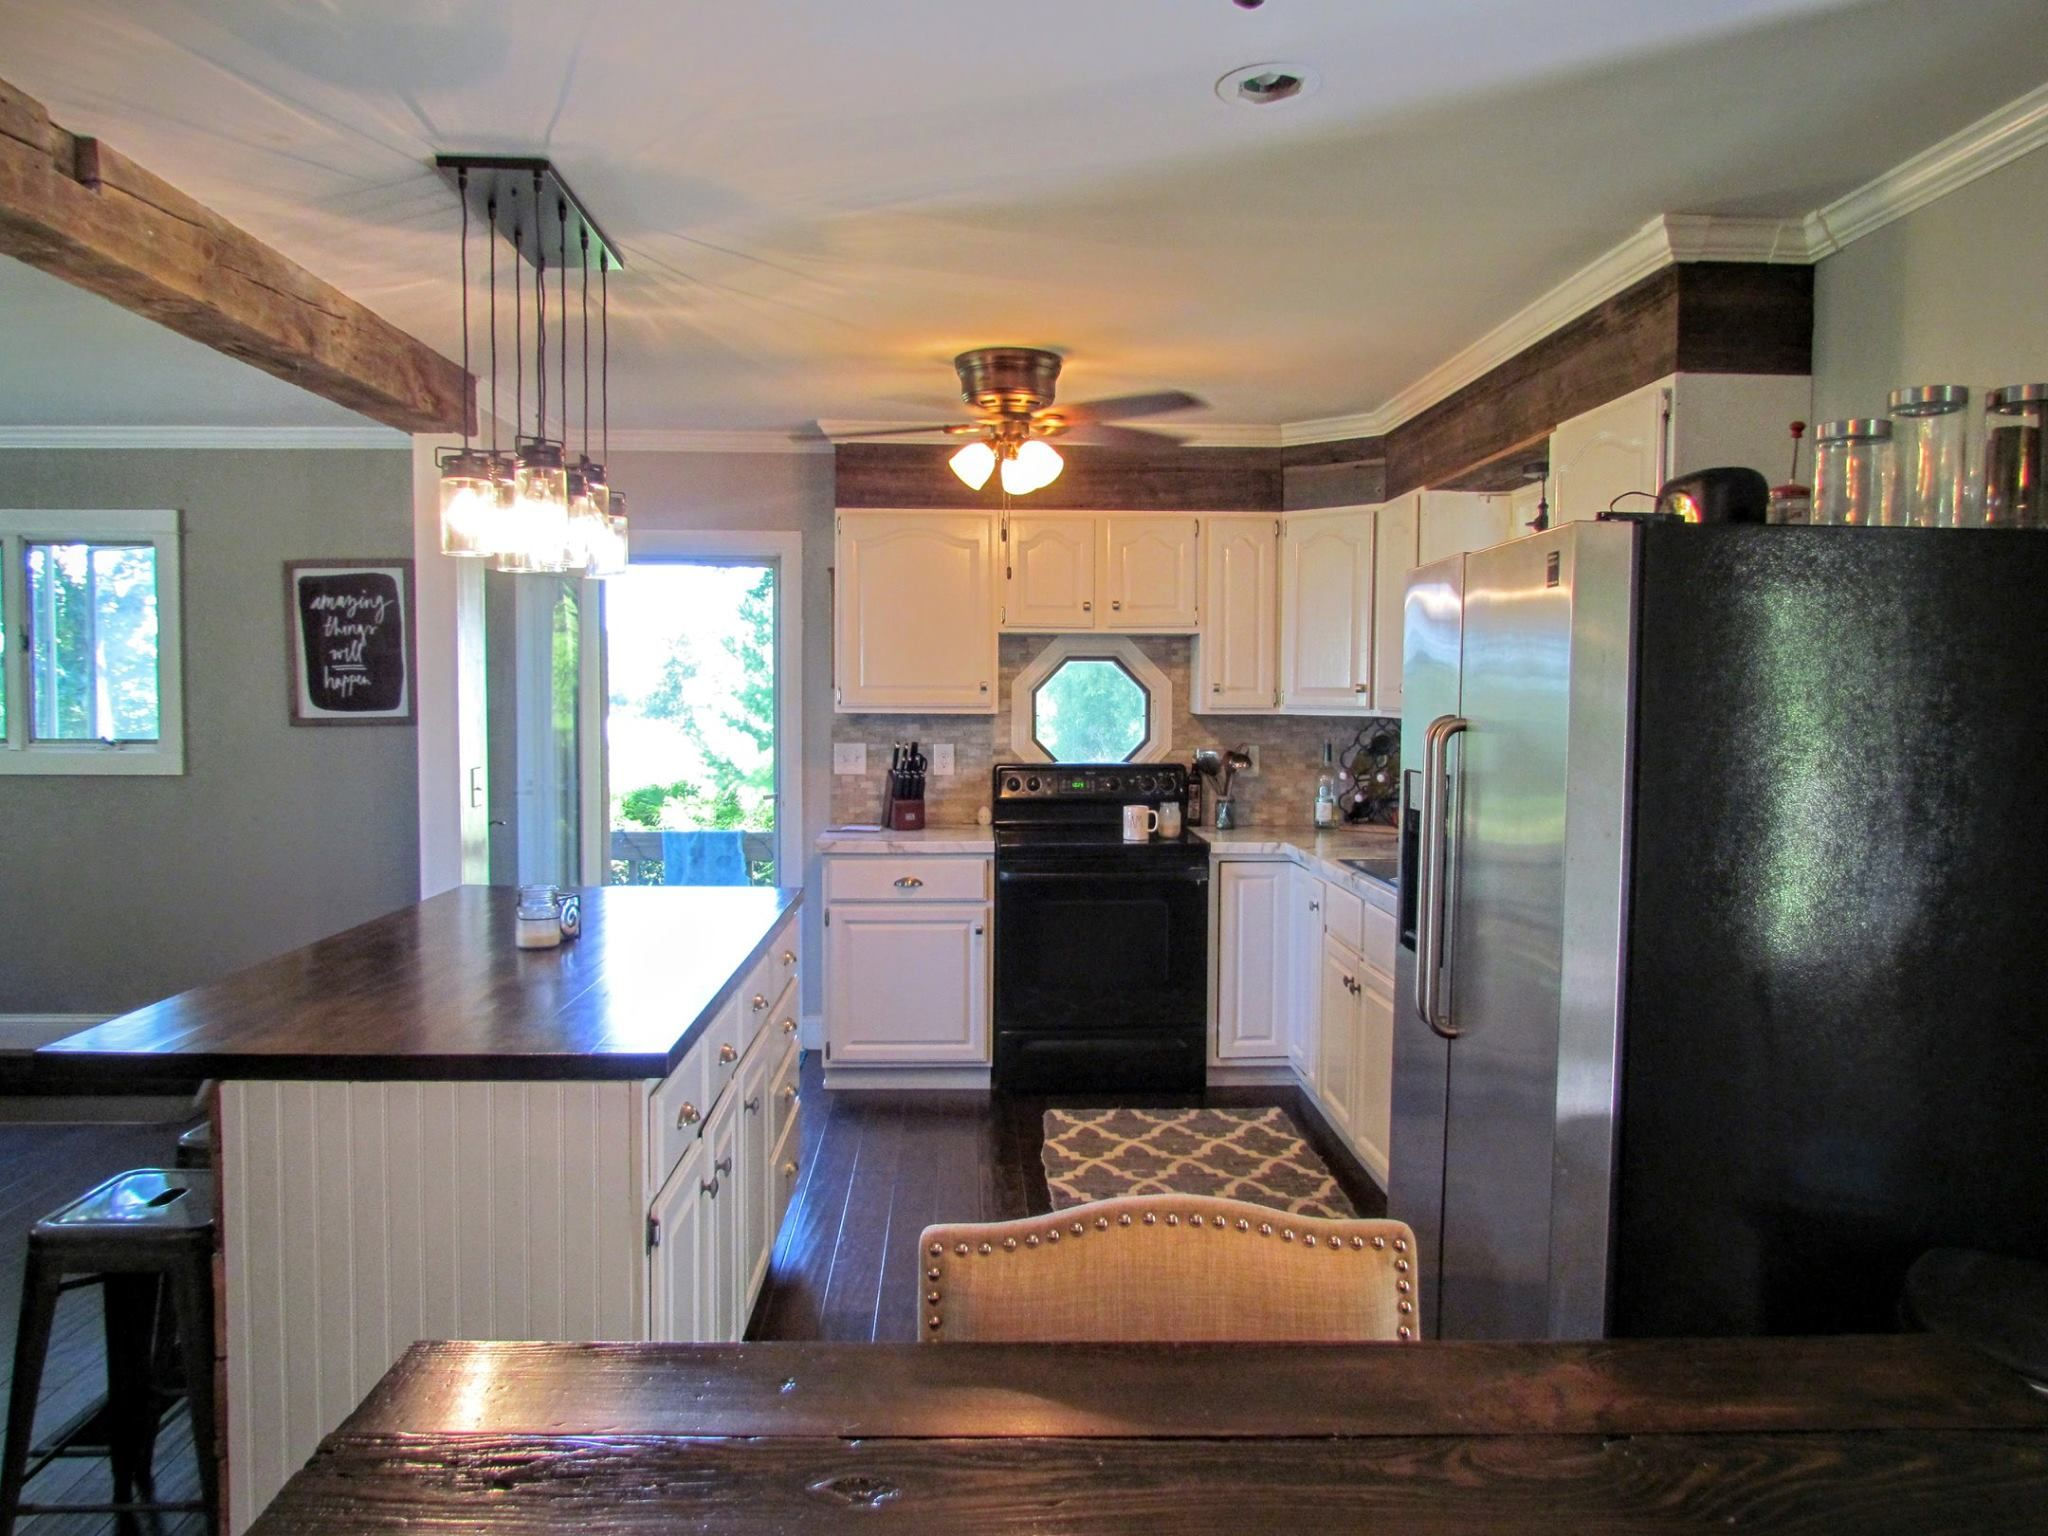 home remodel before after ranch kitchen remodel kitchen remodel cost condo kitchen remodel on kitchen remodel ranch id=71528